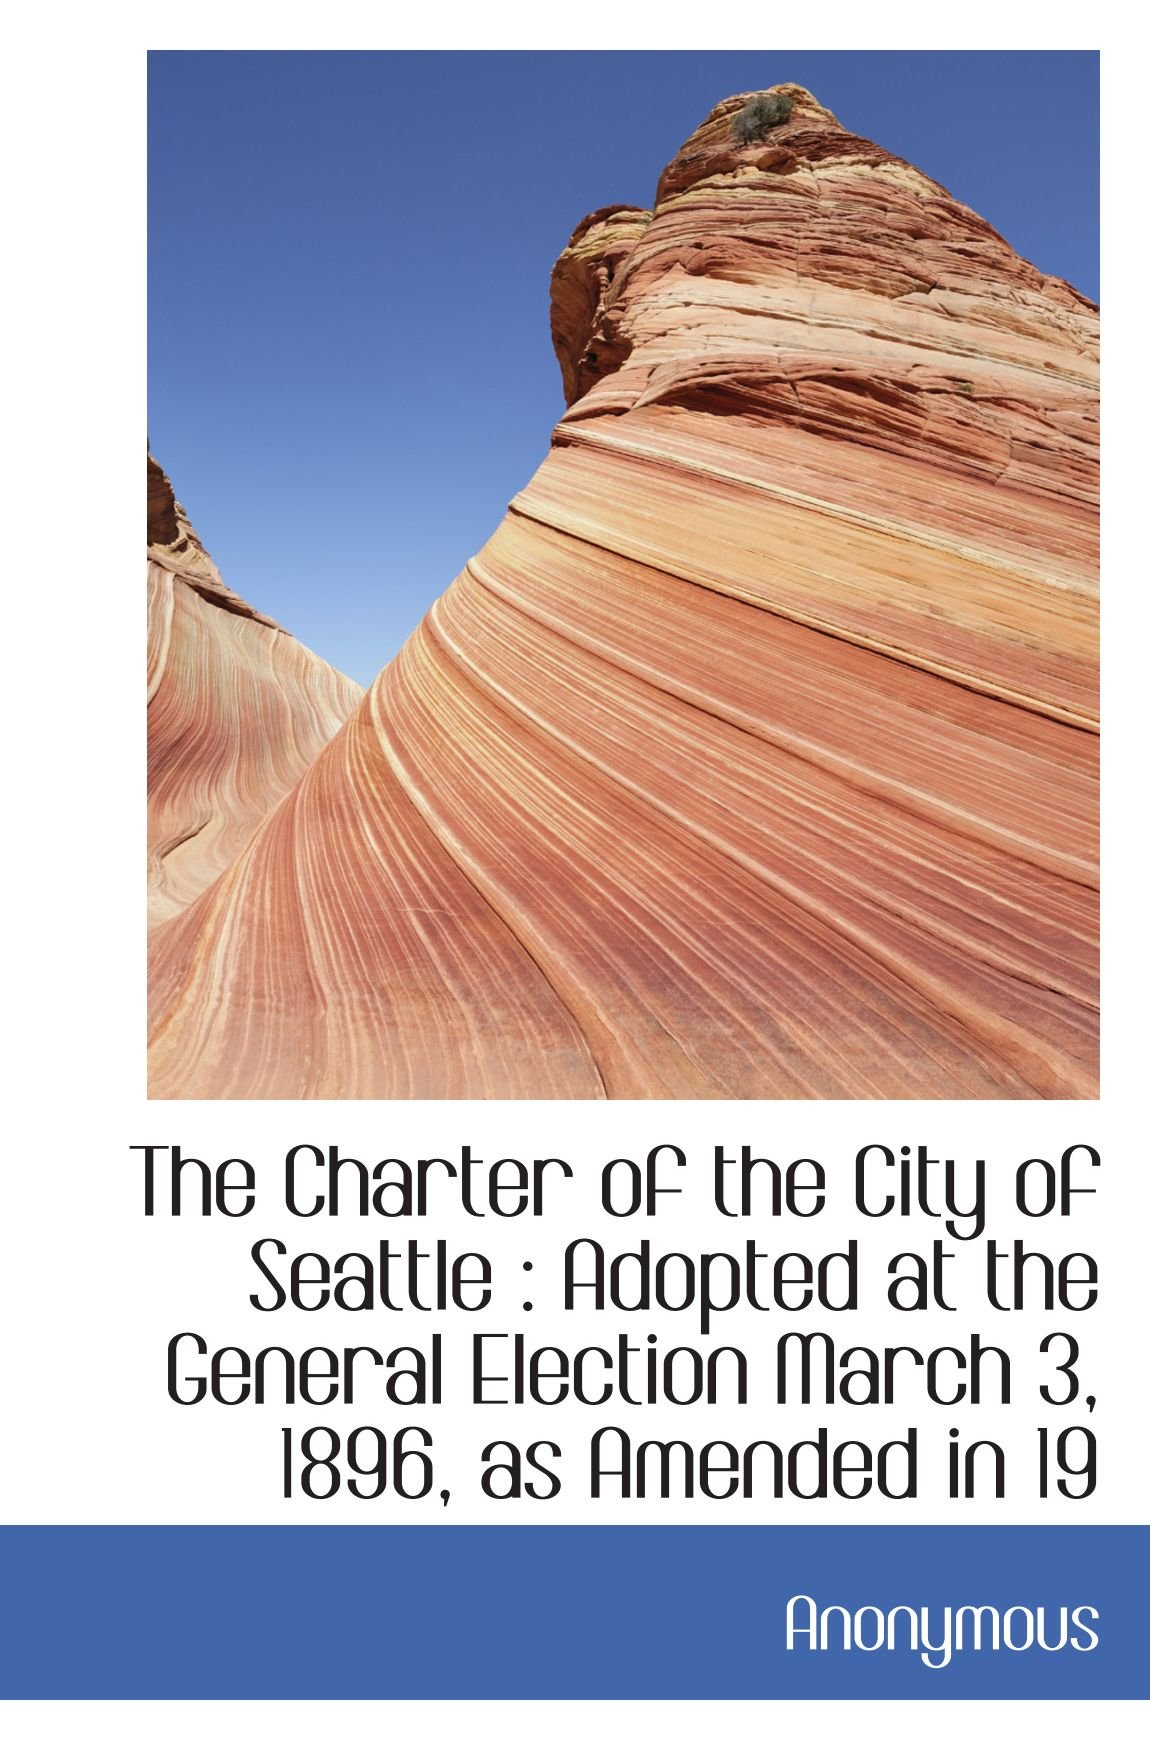 Download The Charter of the City of Seattle : Adopted at the General Election March 3, 1896, as Amended in 19 ebook